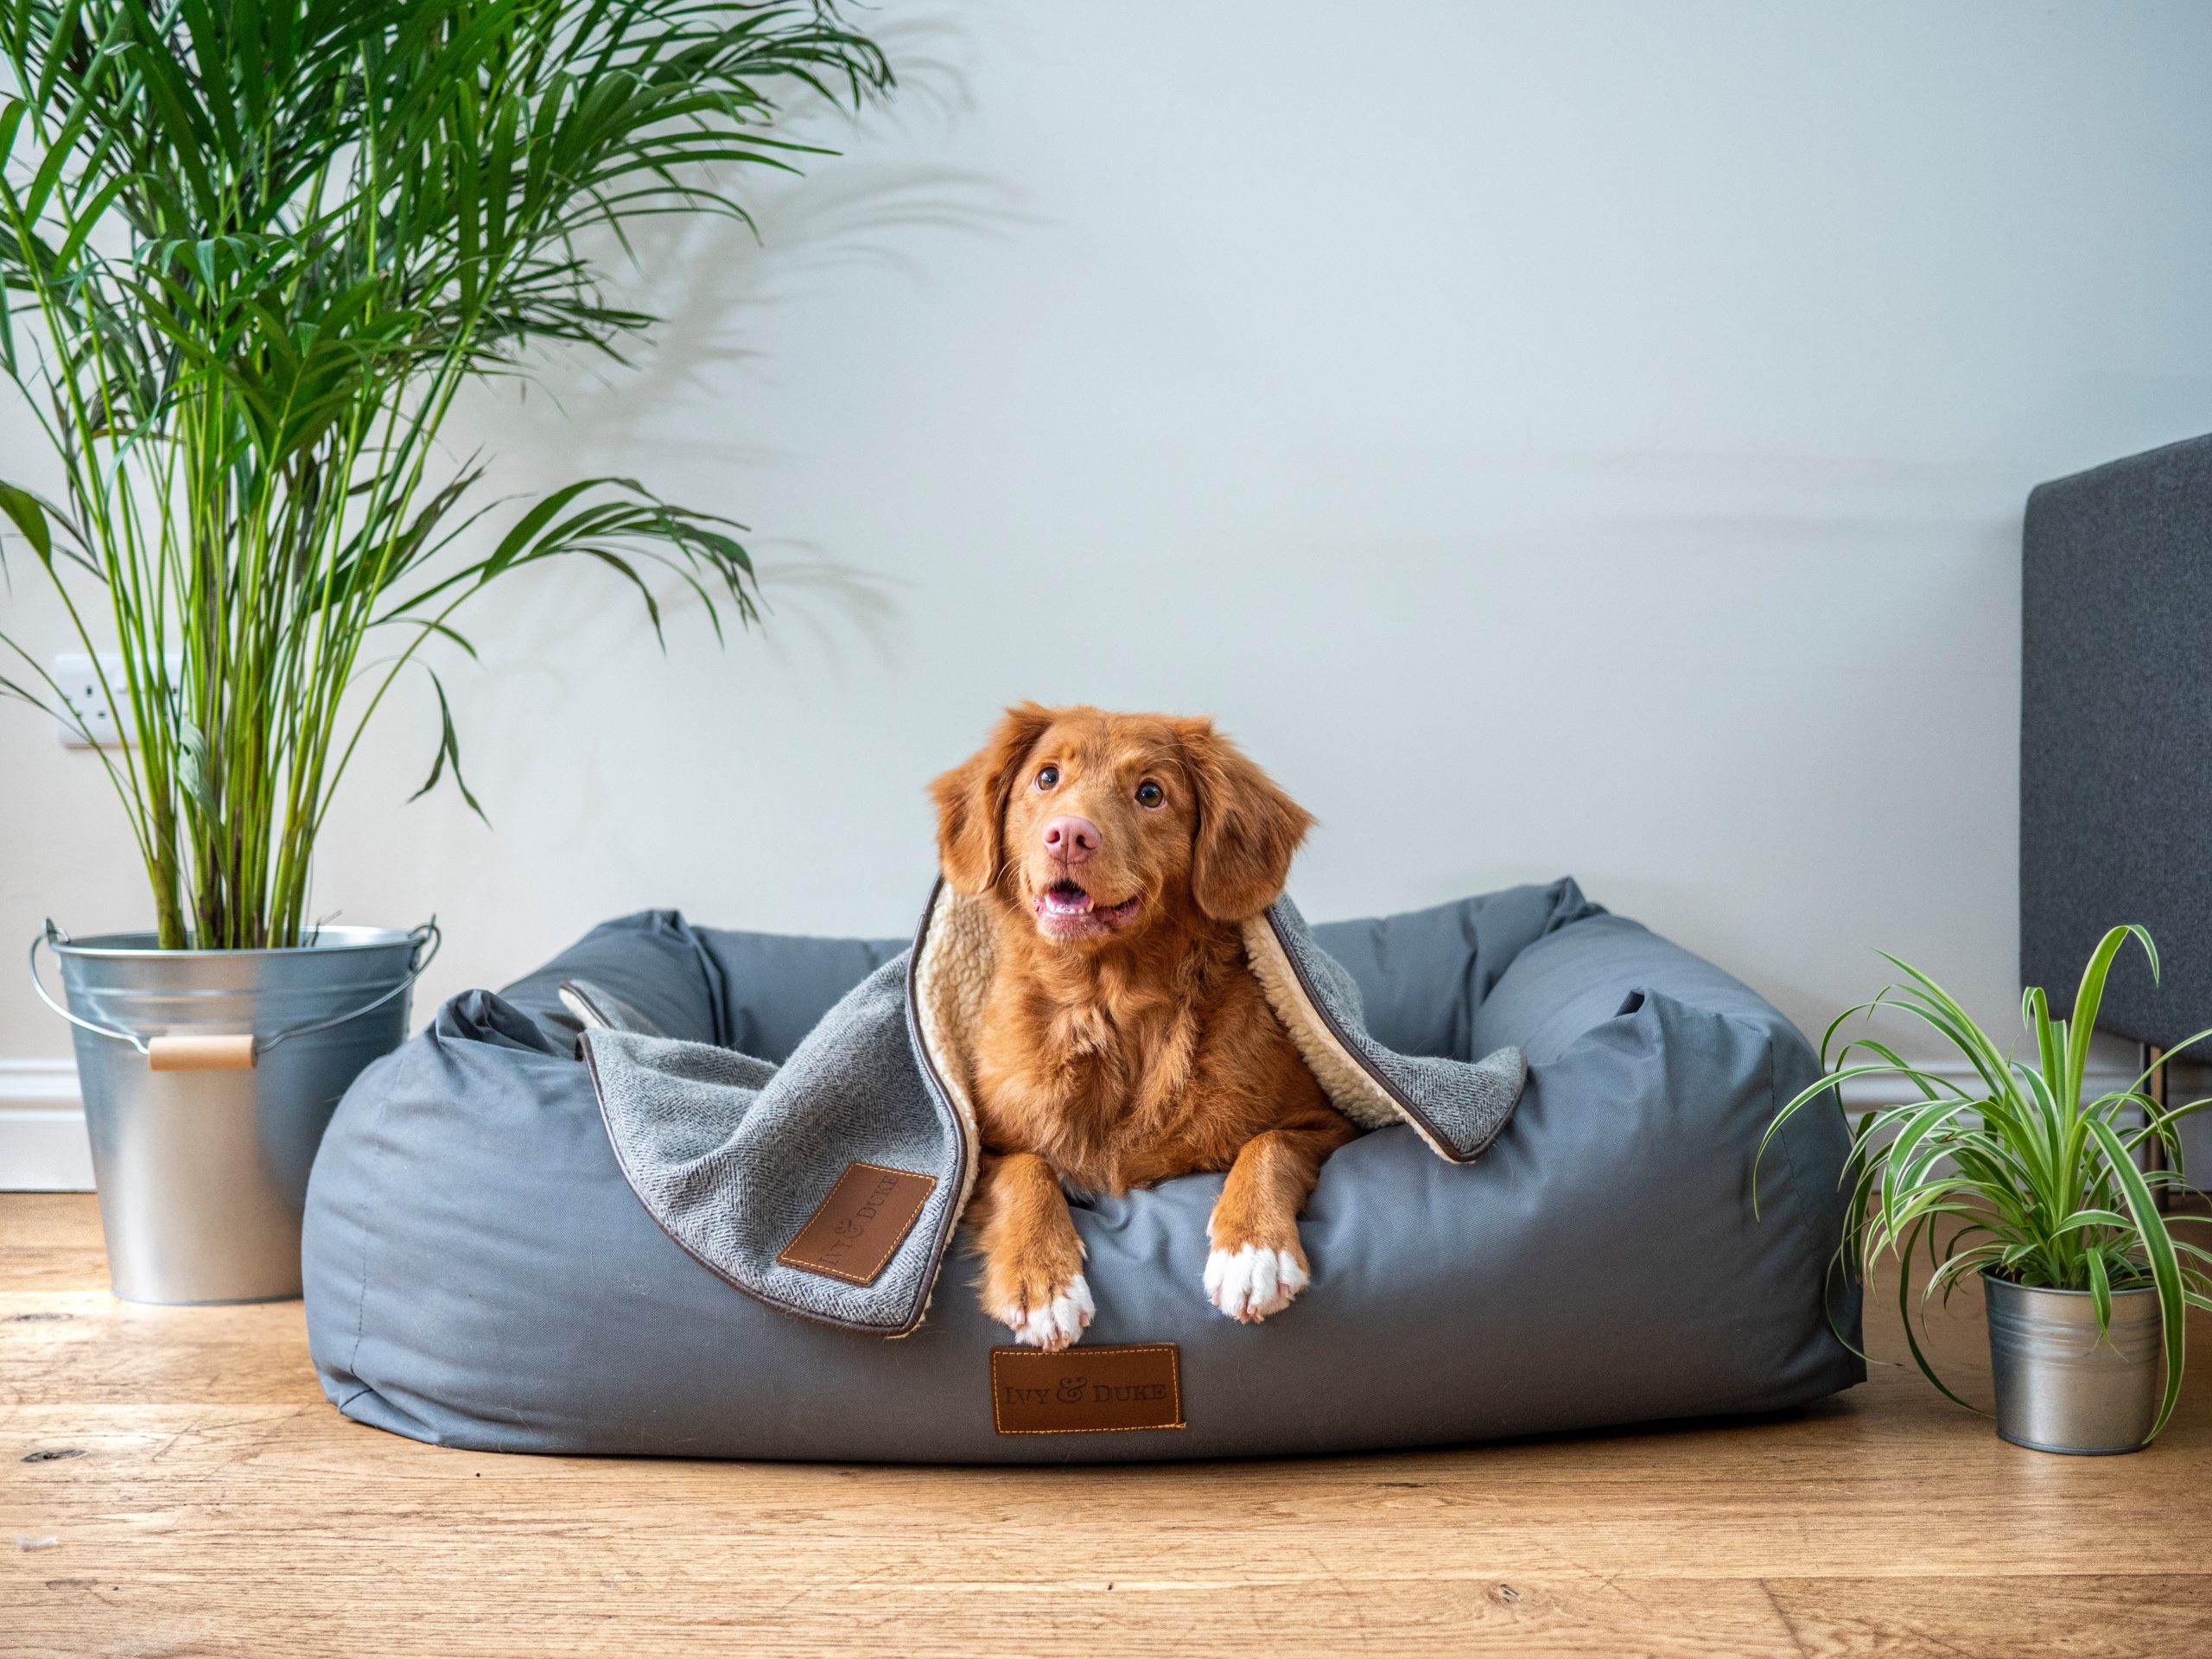 How to Help your Dog Transition to Return to Work